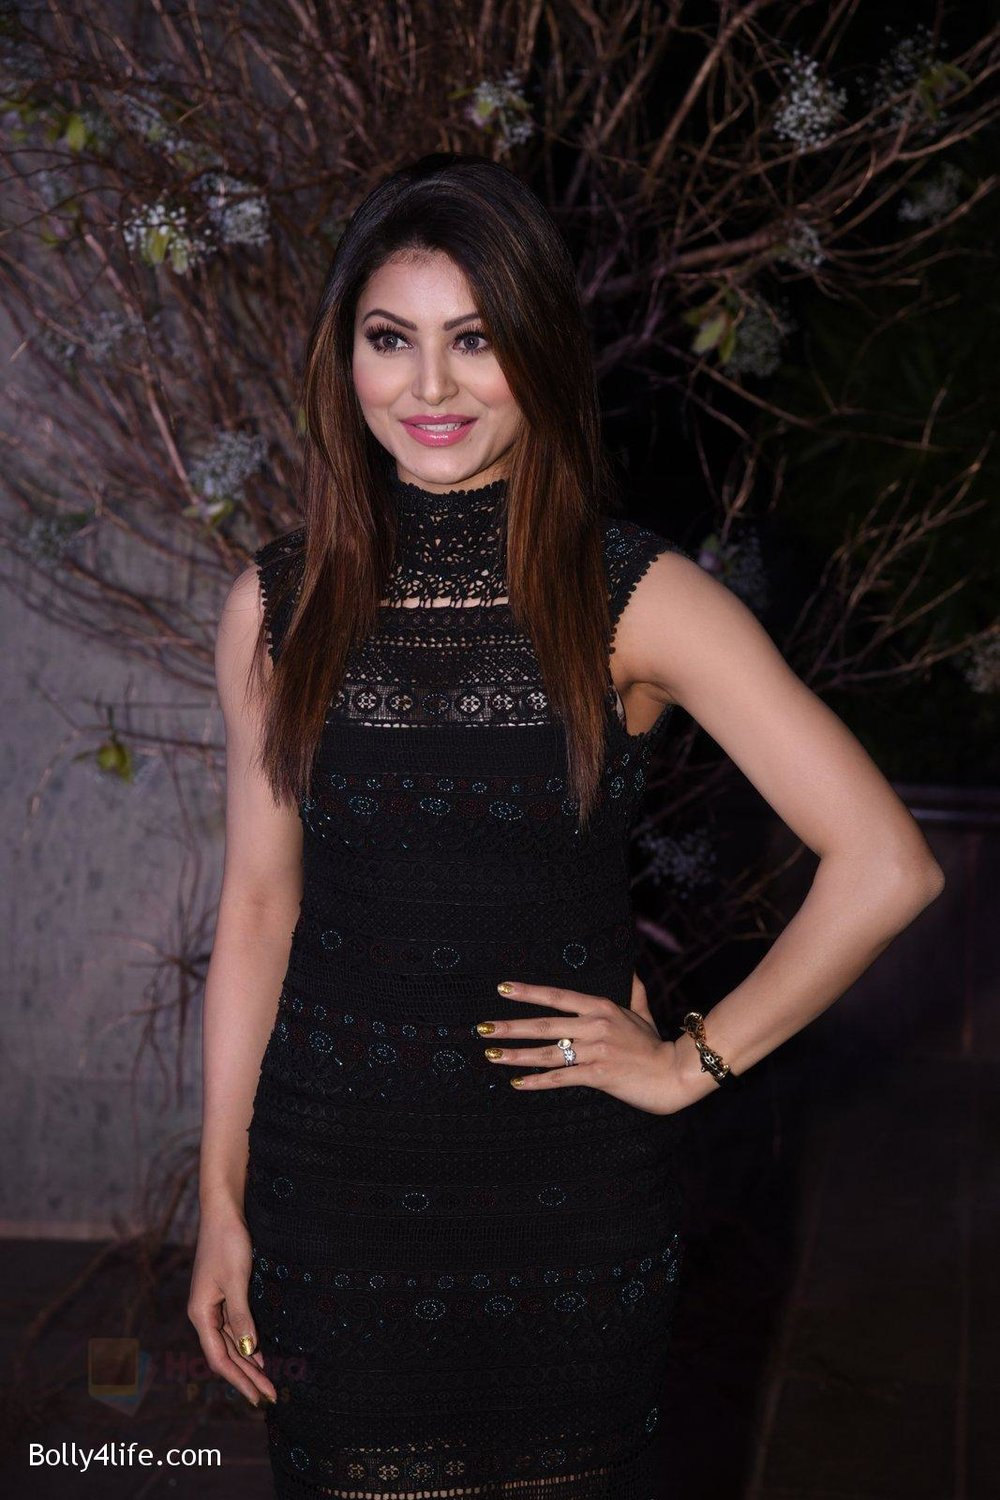 Urvashi-Rautela-at-Manish-Malhotra�s-50th-birthday-bash-hosted-by-Karan-Johar-5.jpg